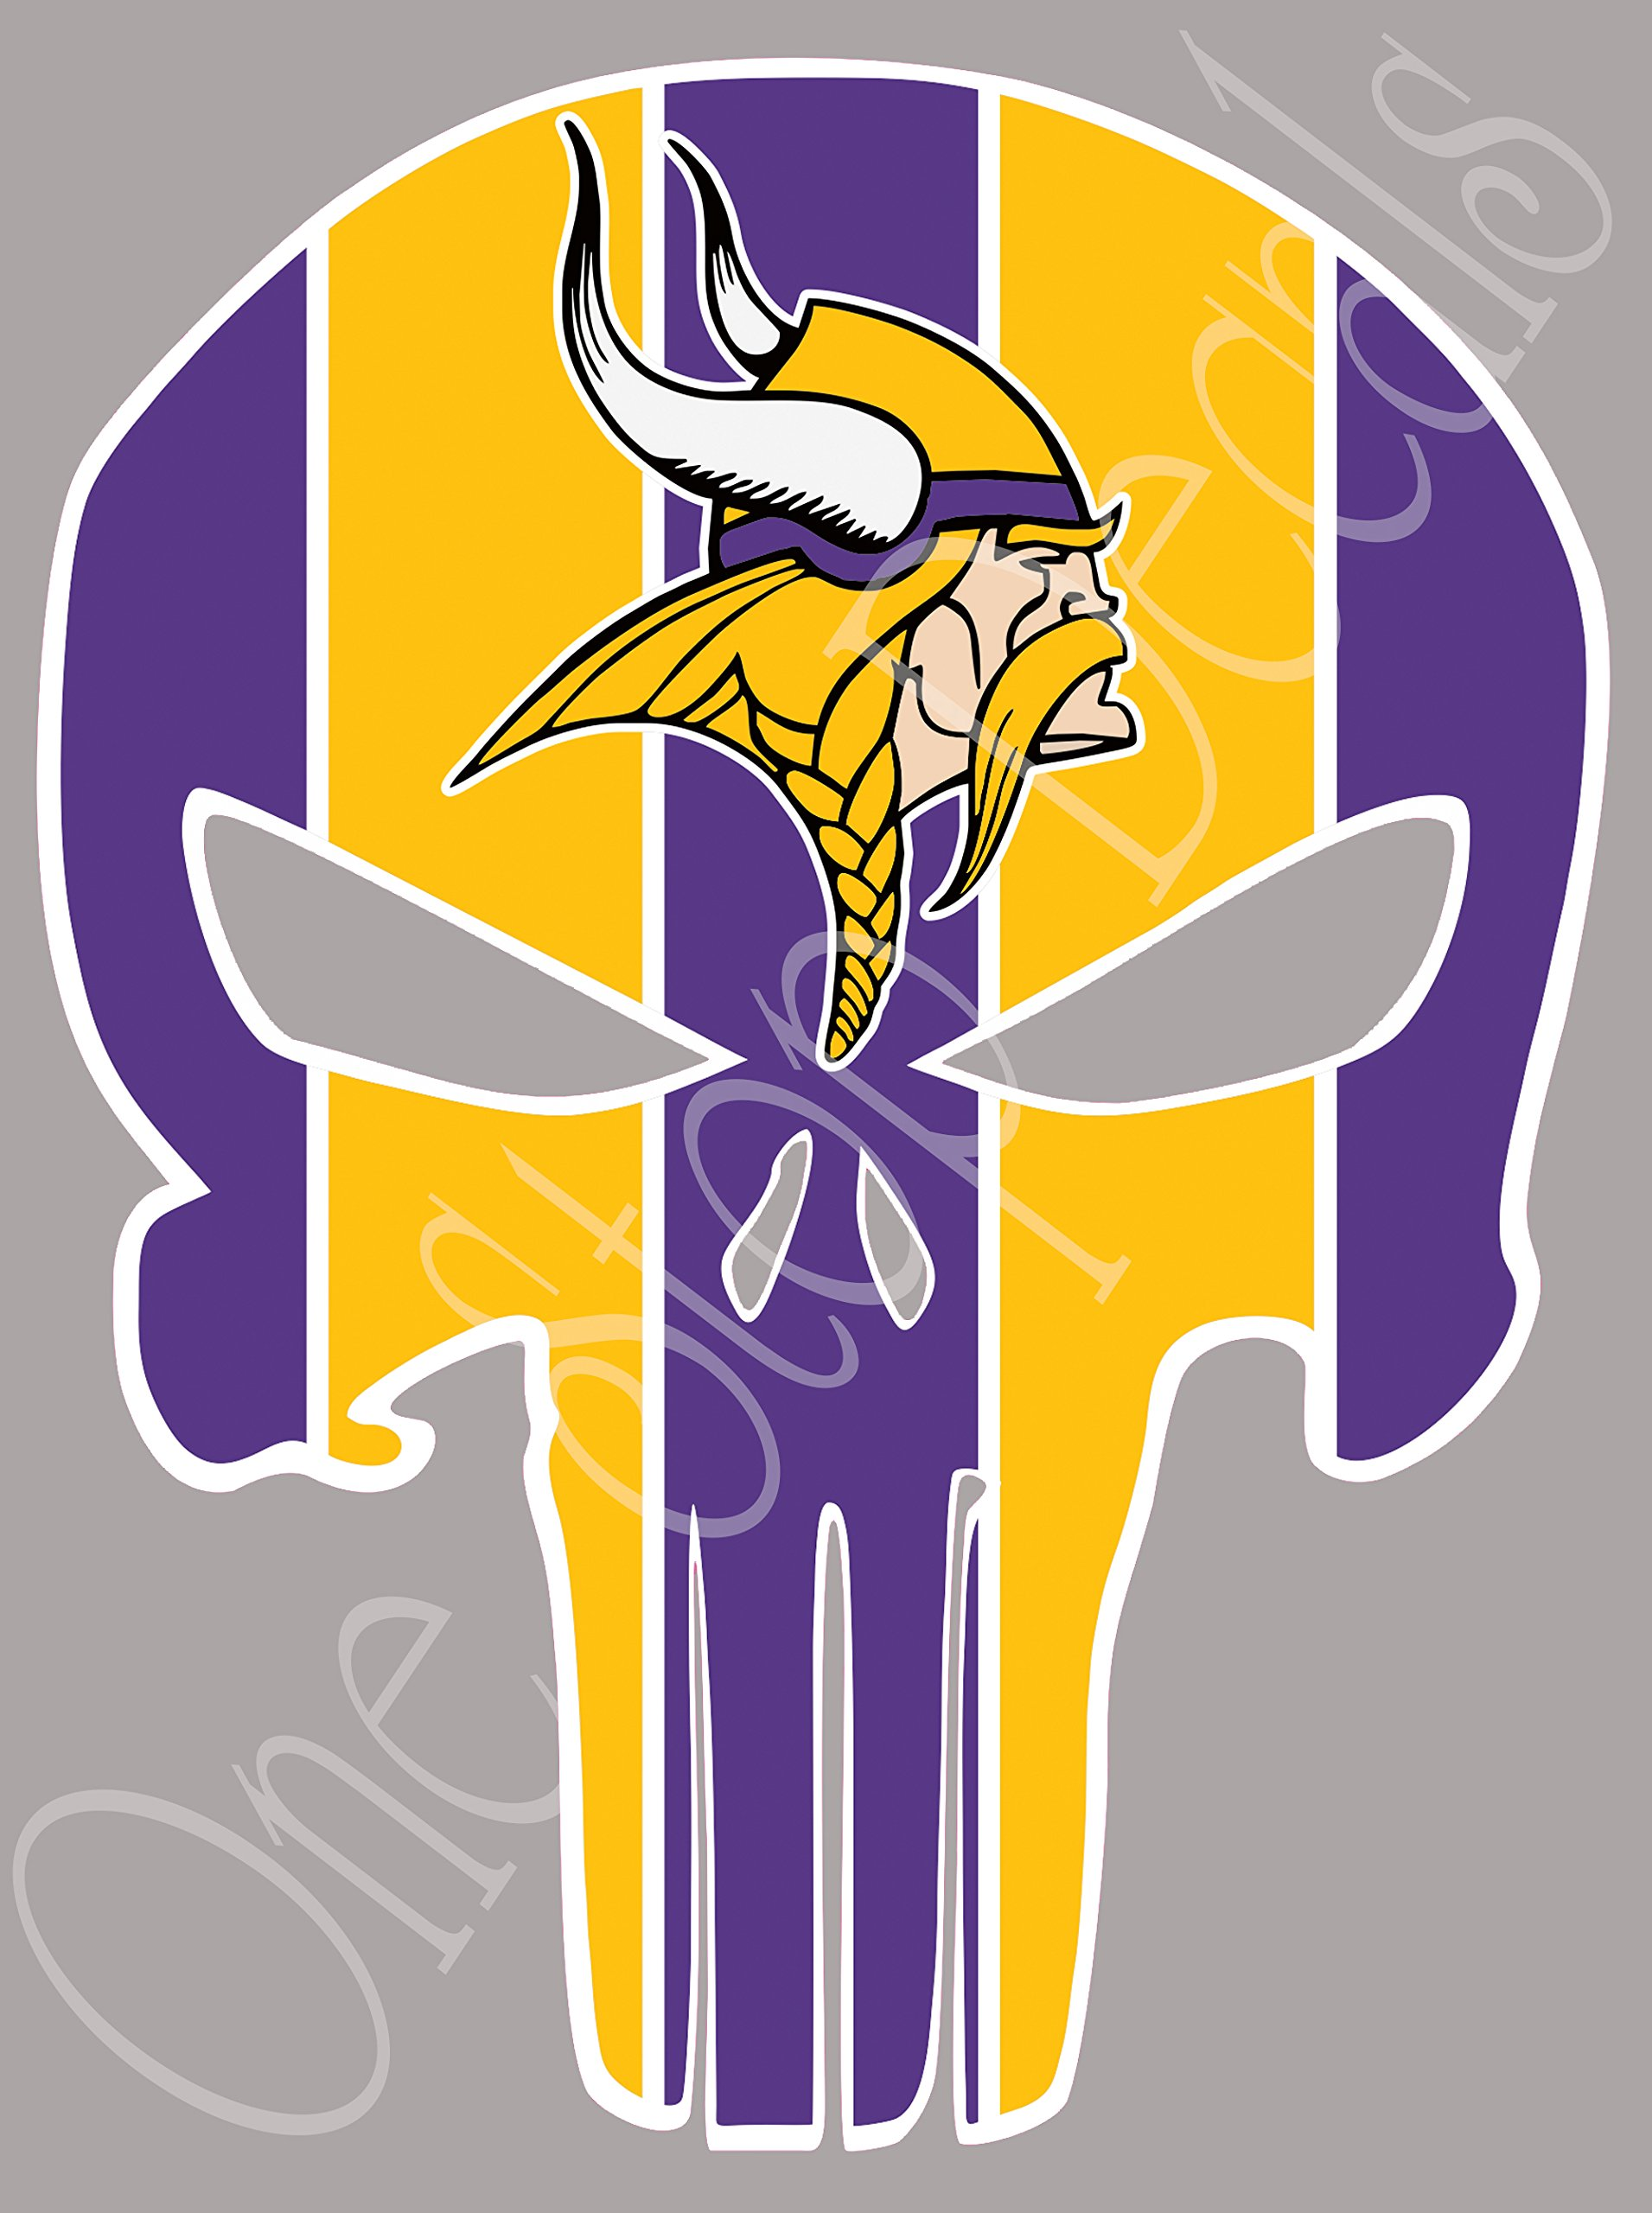 Vikings Punisher (Skull) Full Color Sport Fan Vinyl Decal/Sticker. Outdoor Rated for up to 7 Years, Scratch Resistant, UV Resistant! (SB1) Size: 5'' Tall. by One Stop Nails